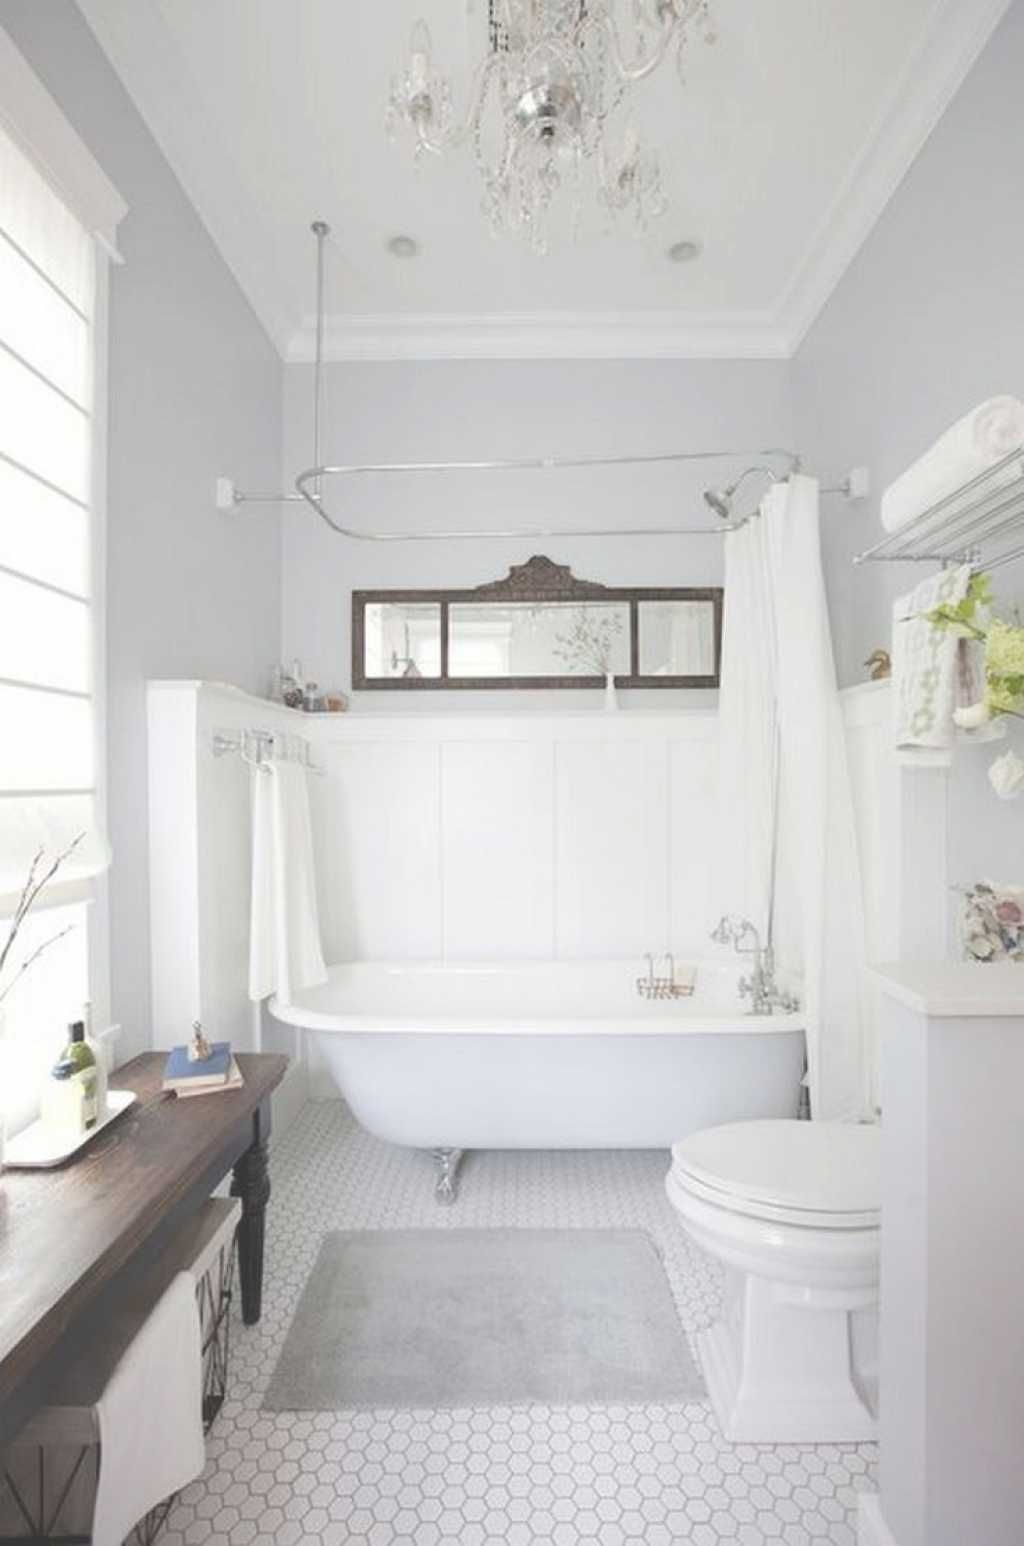 Small Bathroom Tub Shower Combo Remodeling Ideas | Bathroom tub ...